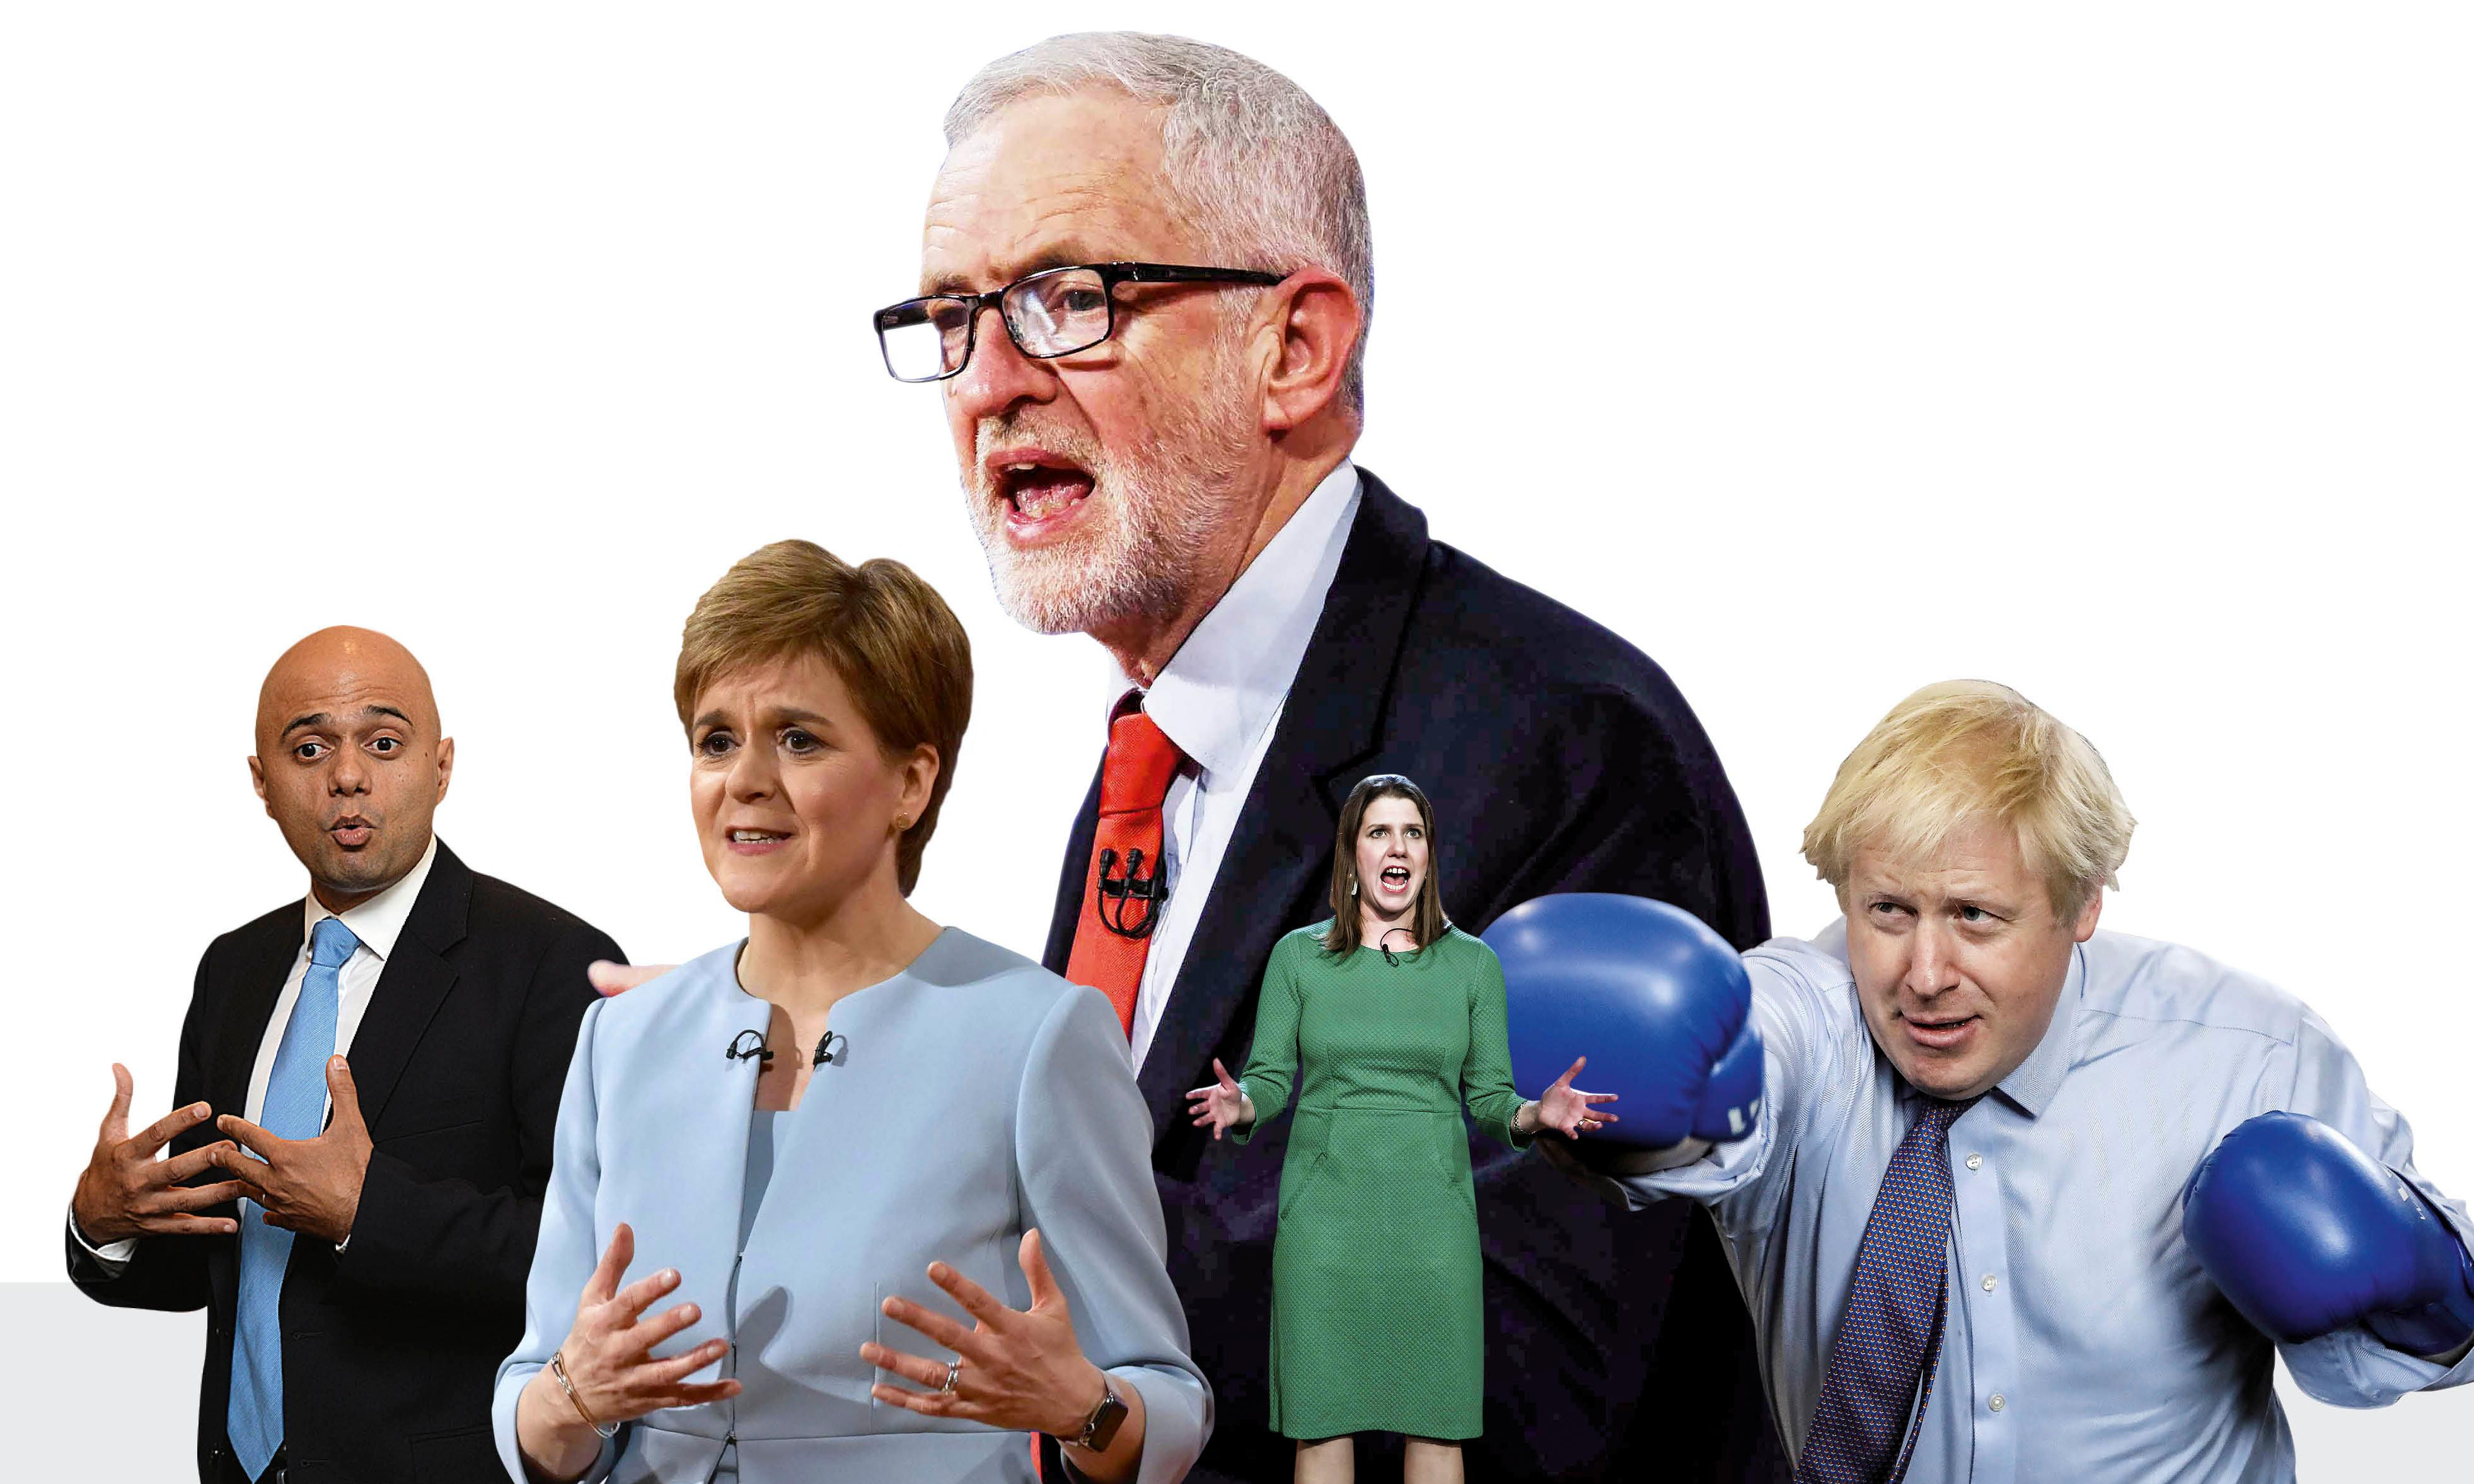 Frankie Boyle's election countdown: 'You'll be praying they prorogue the next parliament'